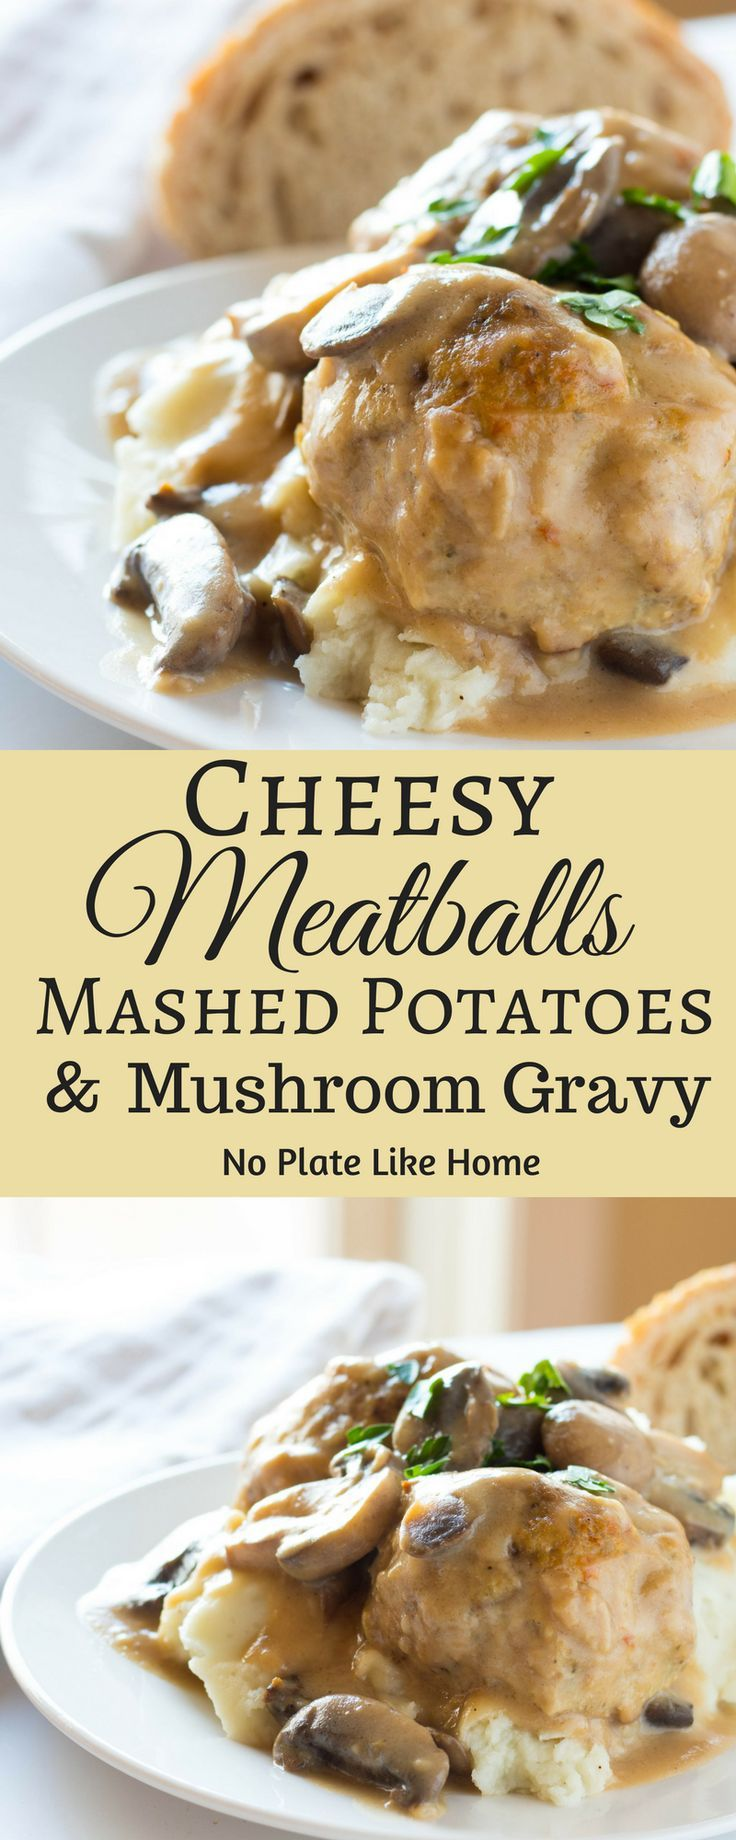 Cheesy Meatballs, Mashed Potatoes and Mushroom Gravy is yummy comfort food made from scratch! No cream of mushroom soup in this recipe! You'll love the homemade taste!